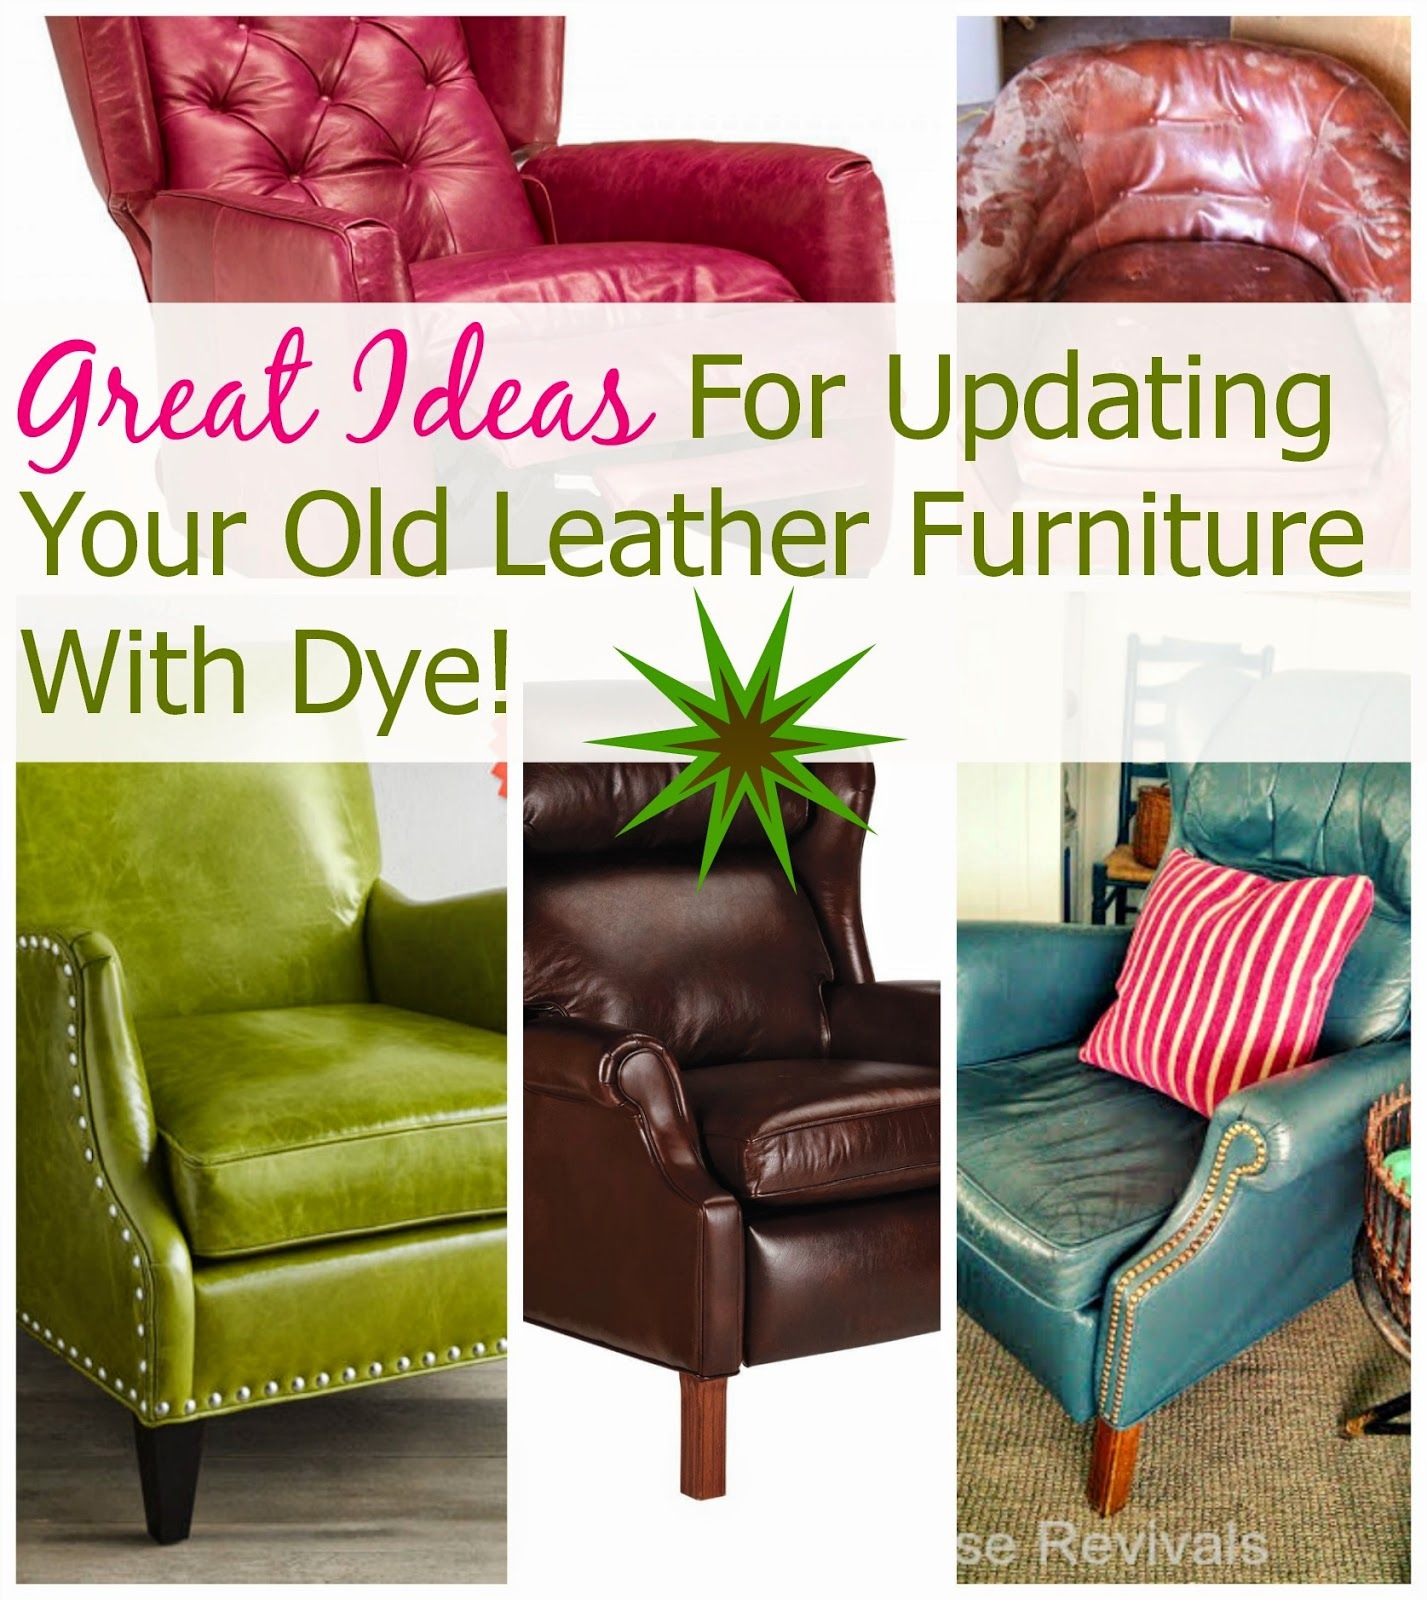 Great House Revivals: How To Dye A Leather Sofa Or Chair